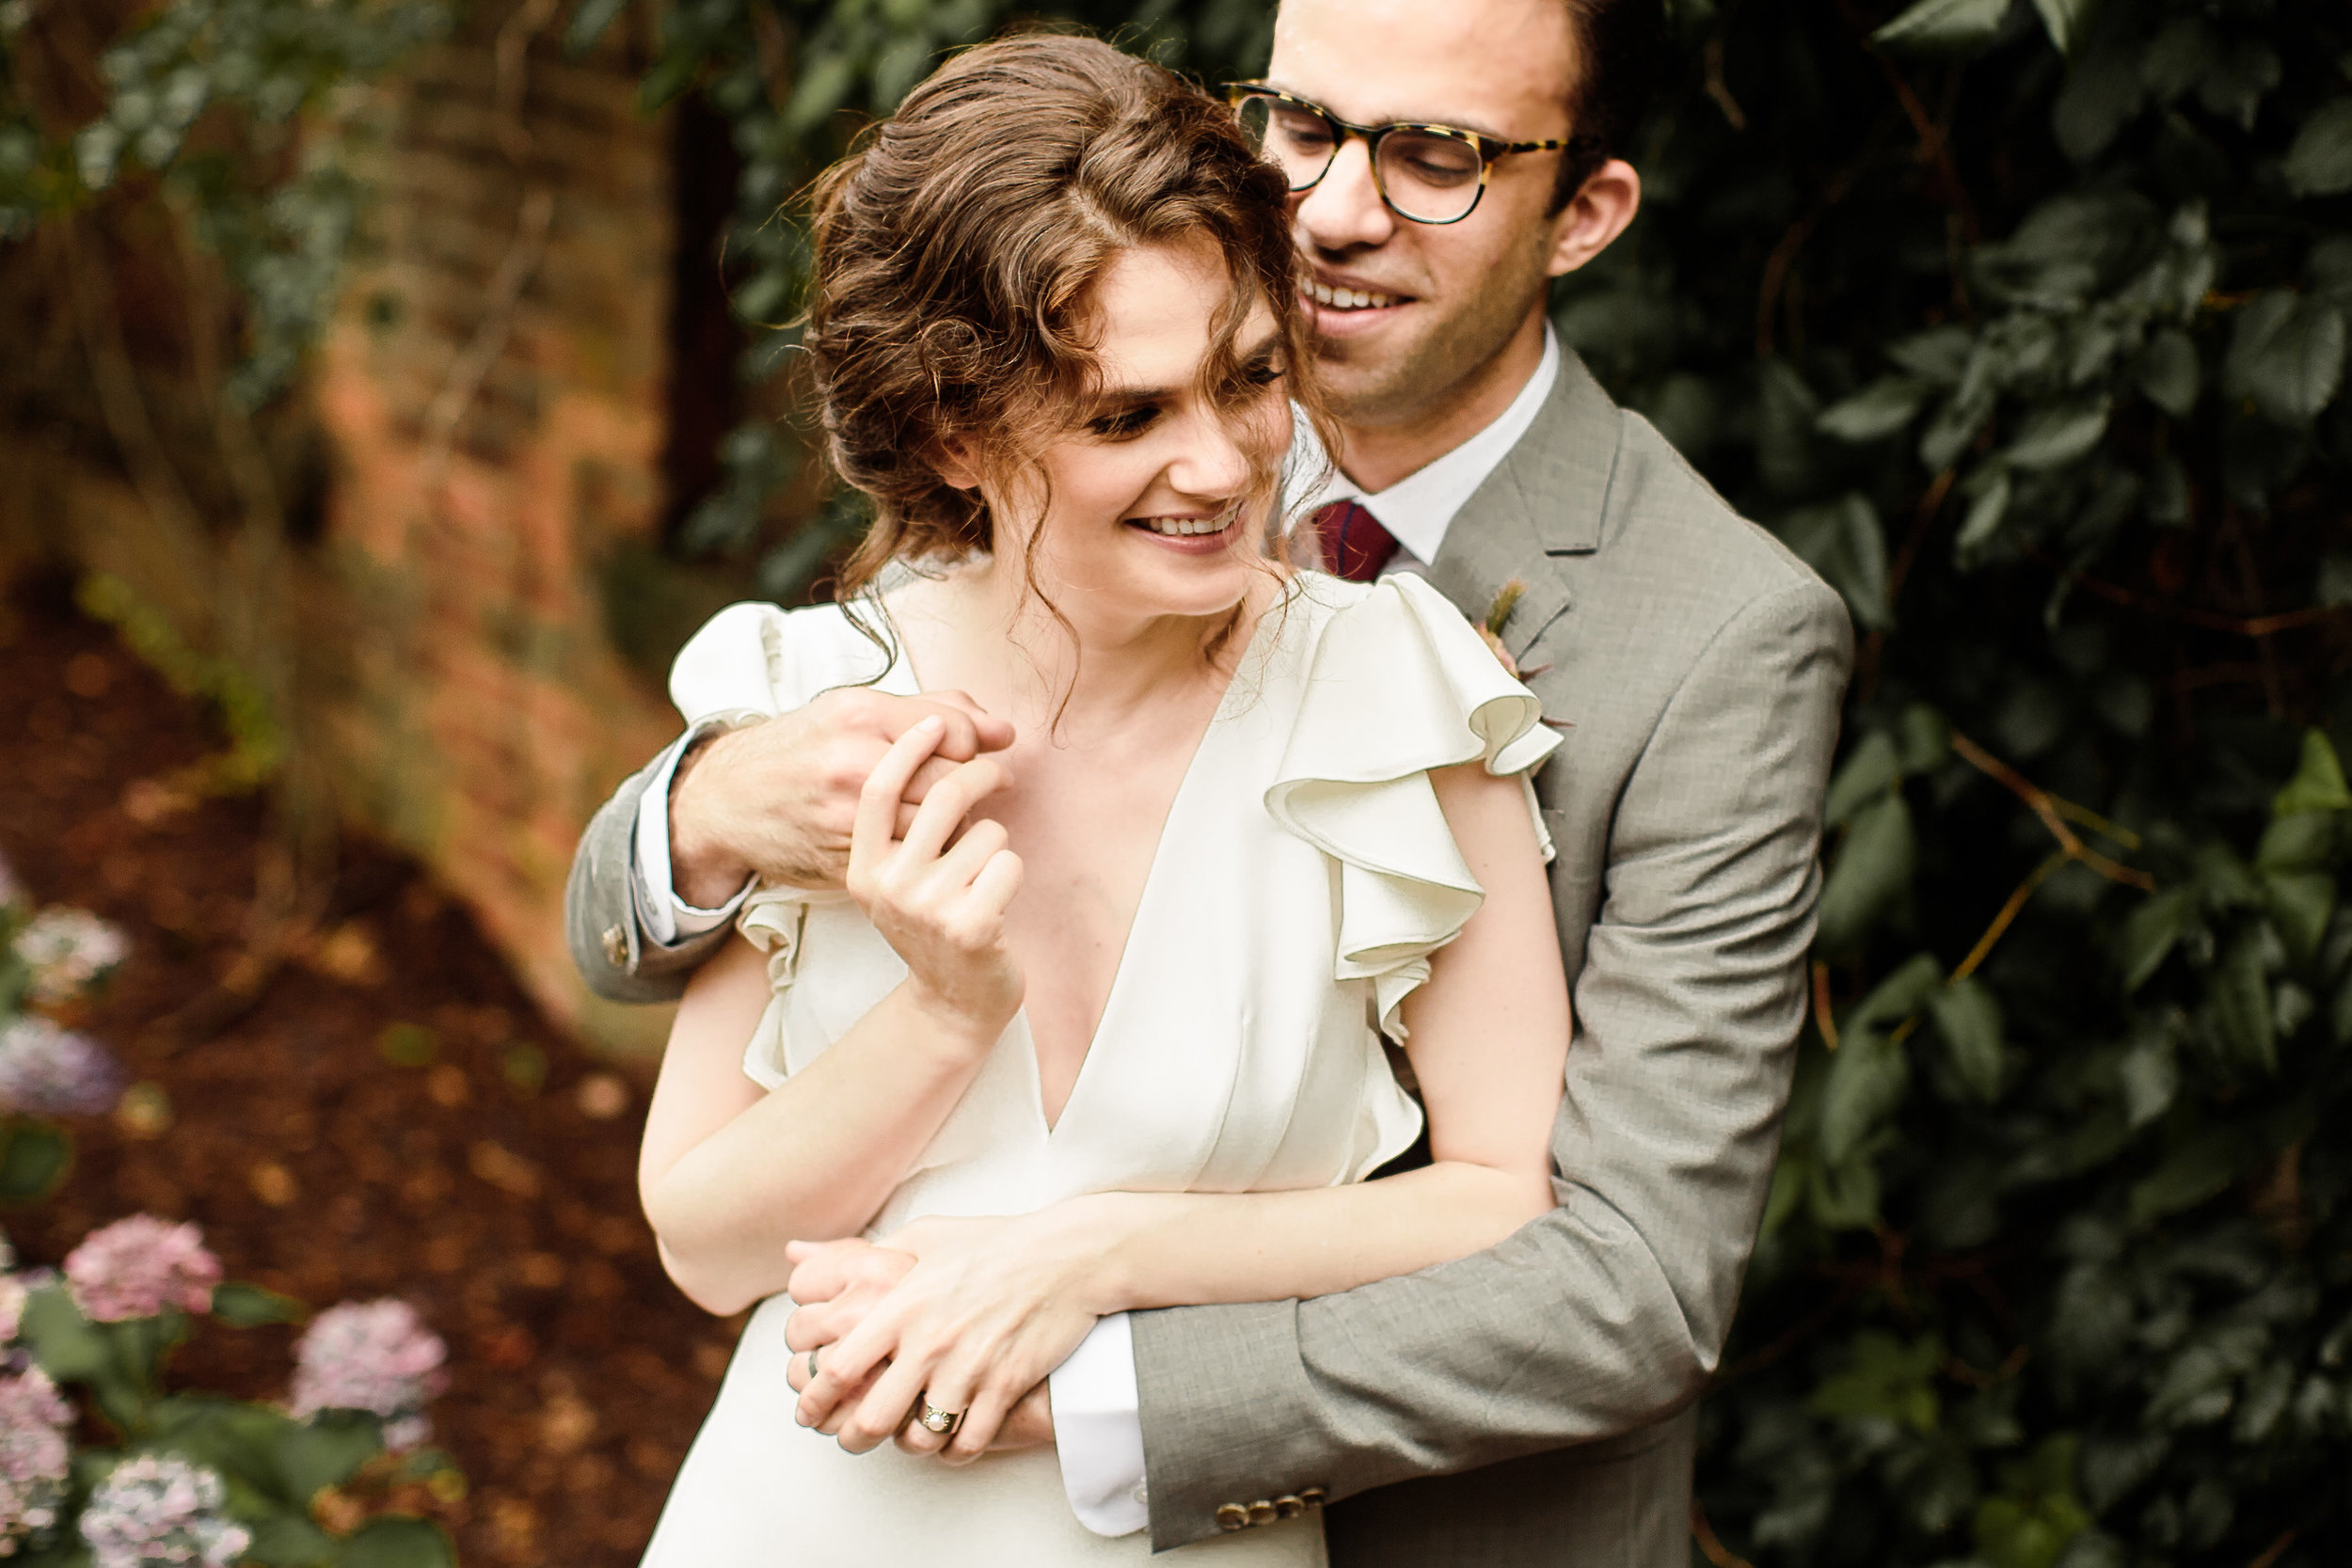 Bride in Alexander Grecco dress from Everthine Bridal in Madison, CT - Pearl Weddings & Events